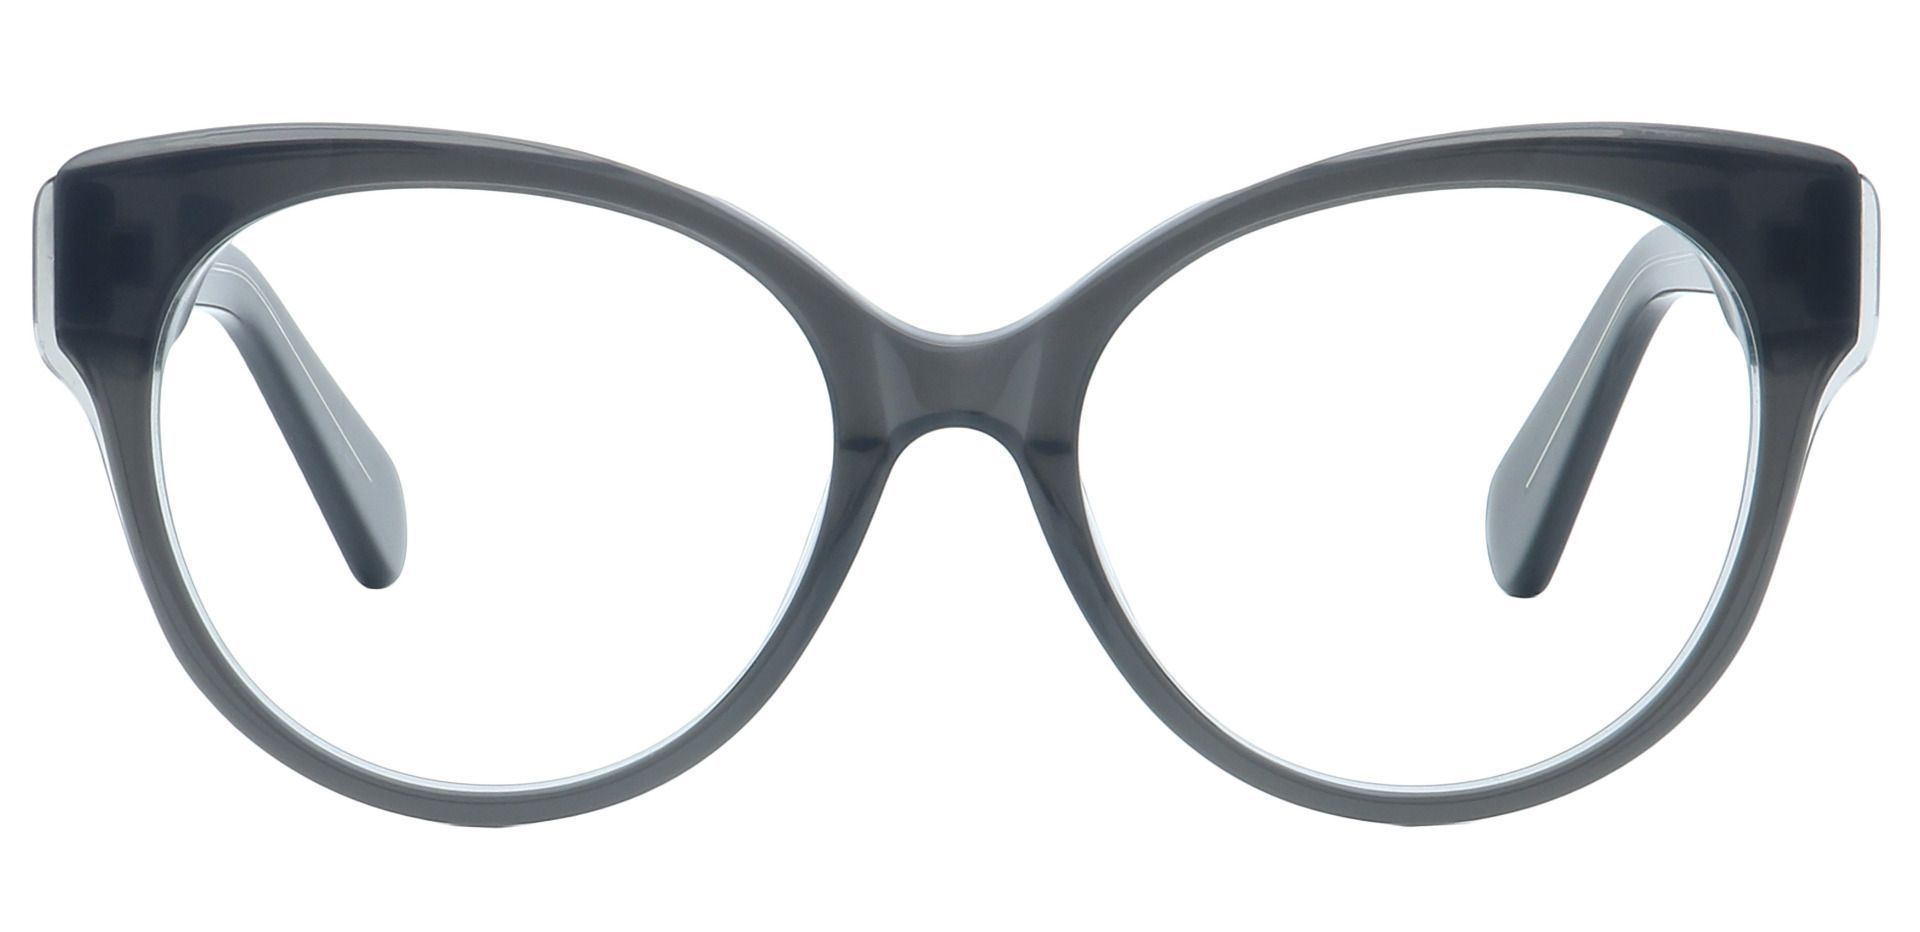 DJ Oval Eyeglasses Frame - Gray